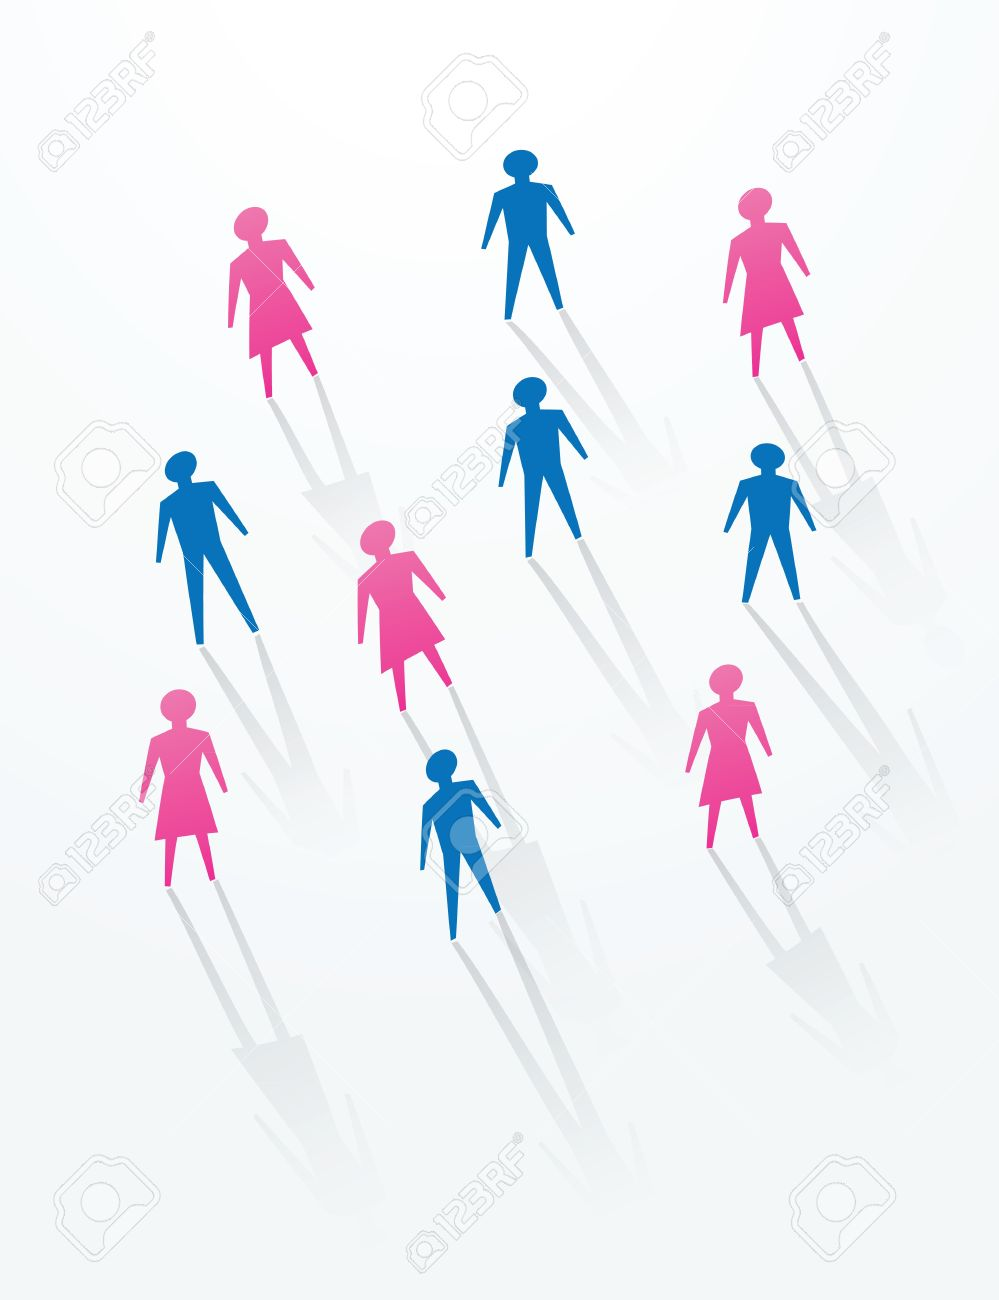 man and woman paper cutout people sihouettes, for social life in society. Stock Vector - 11822982